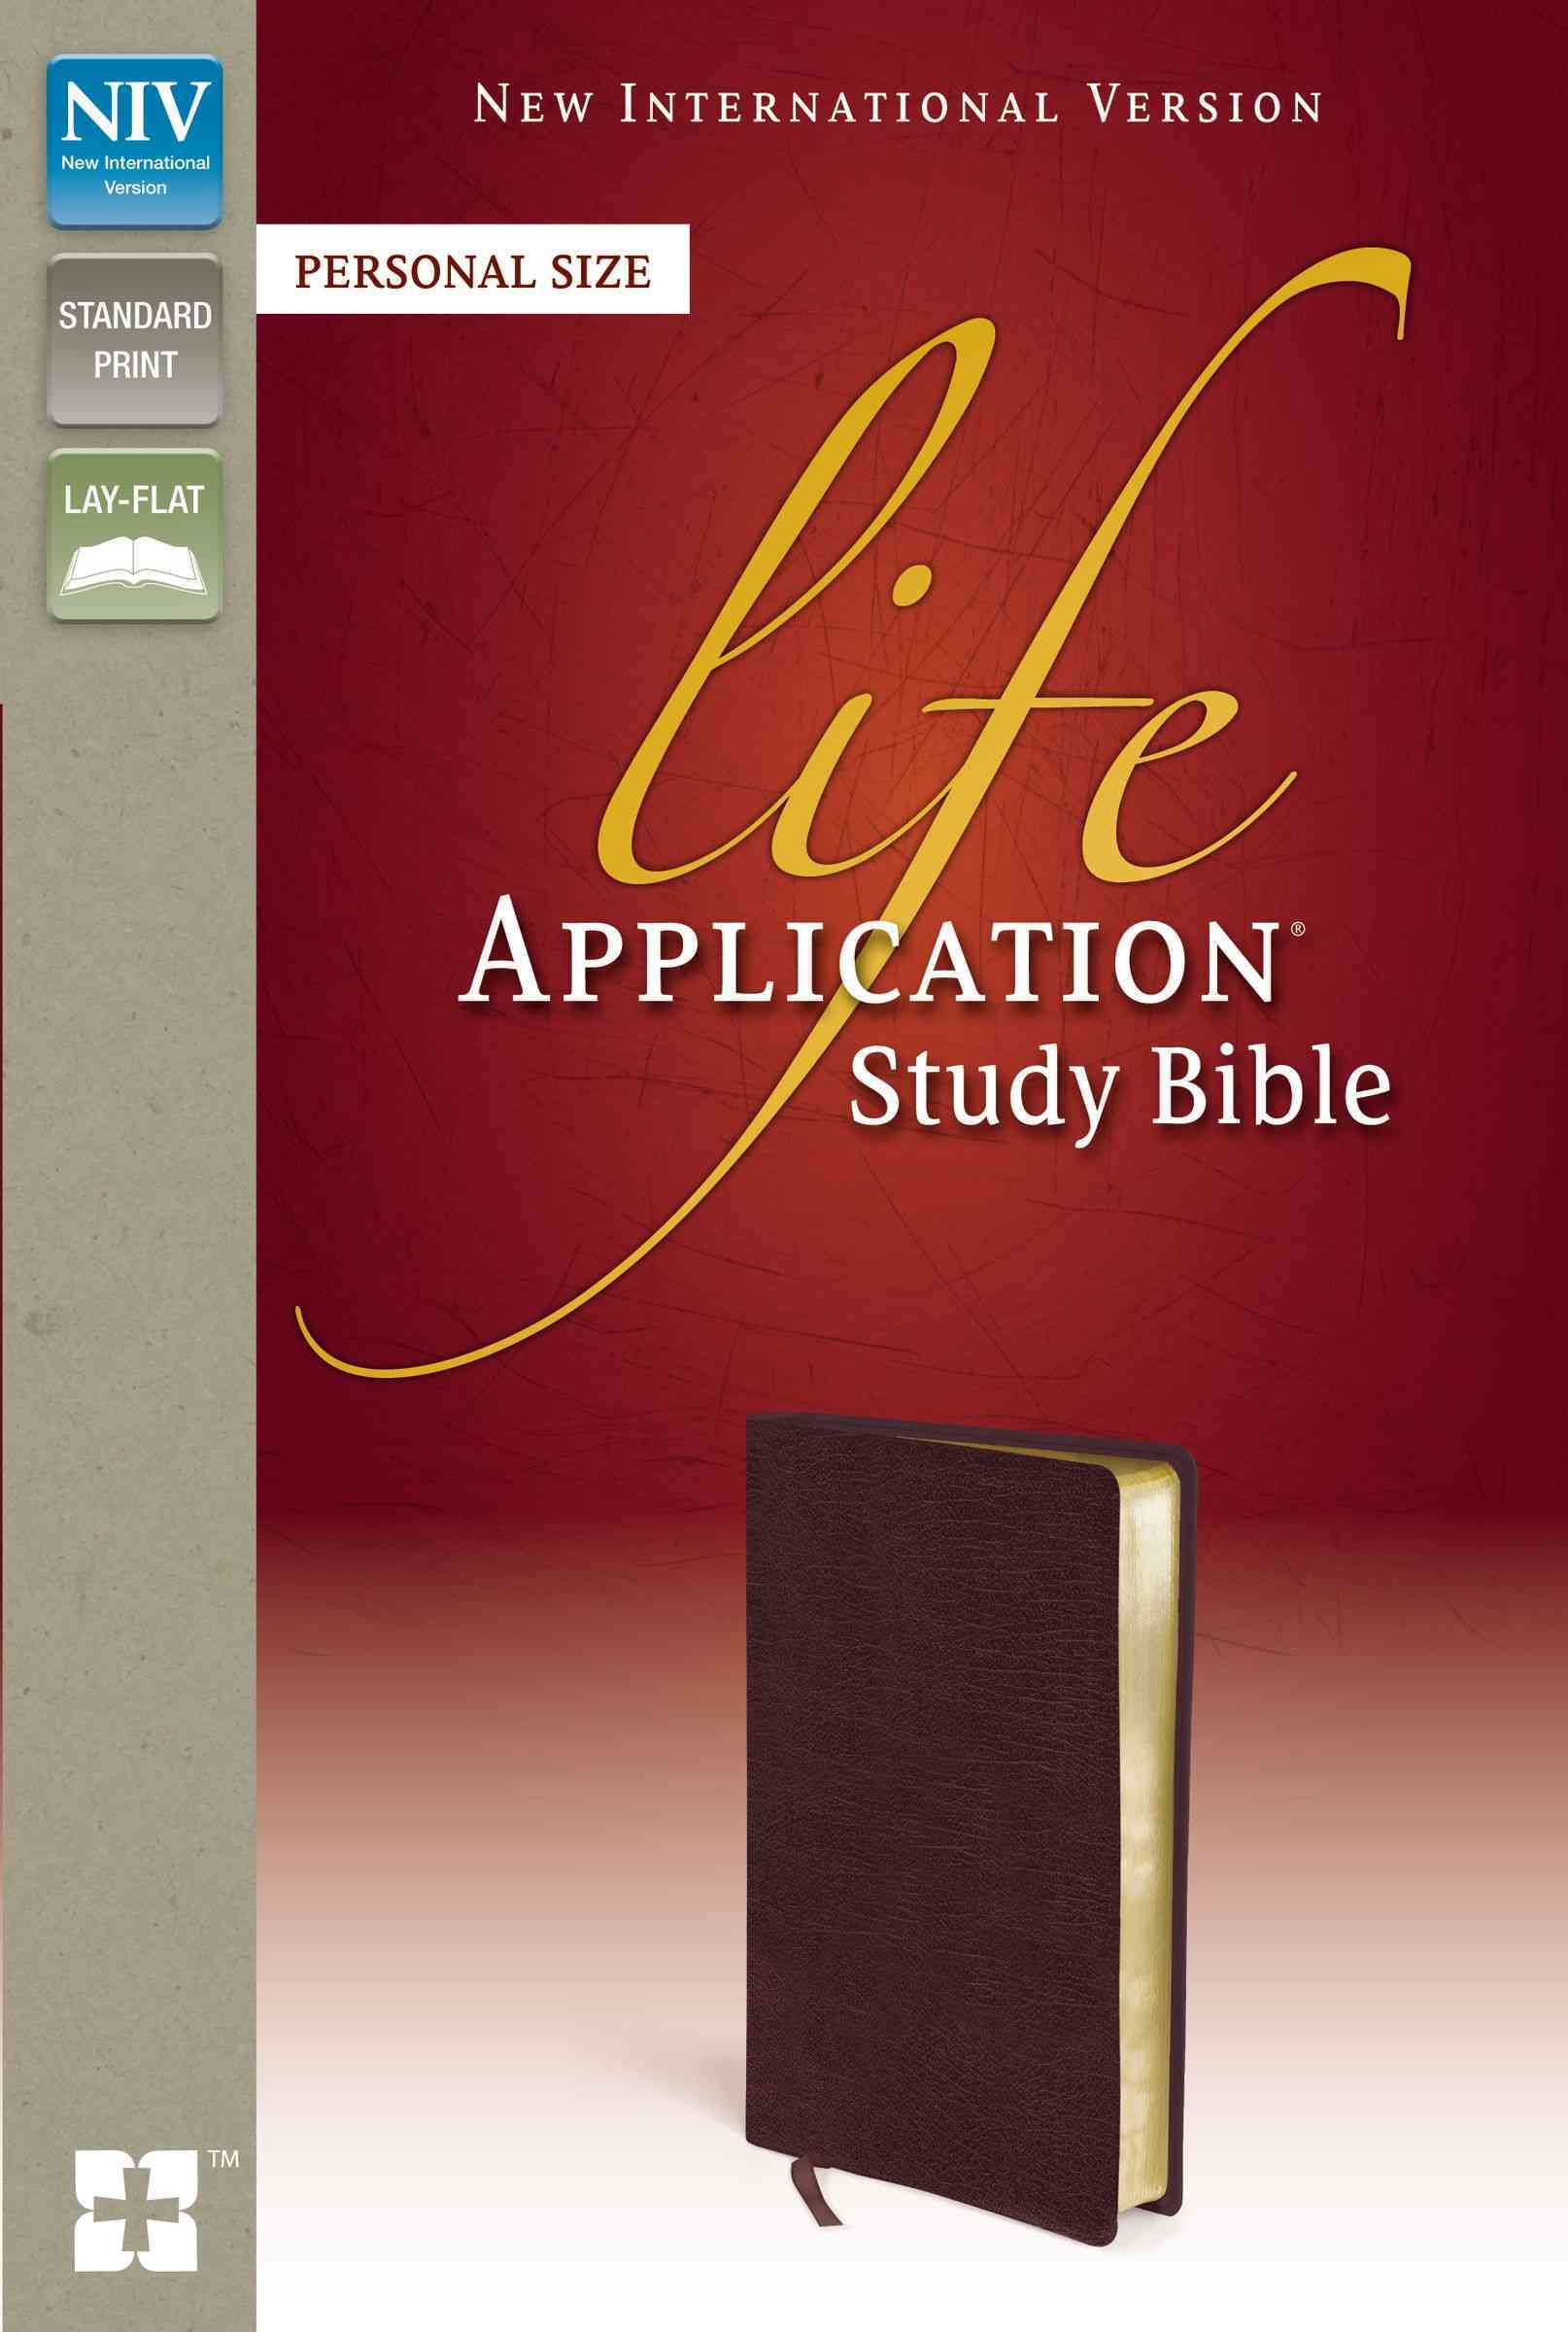 Life Application Study Bible: New International Version Burgundy Bonded Leather Personal Size (Paperback)